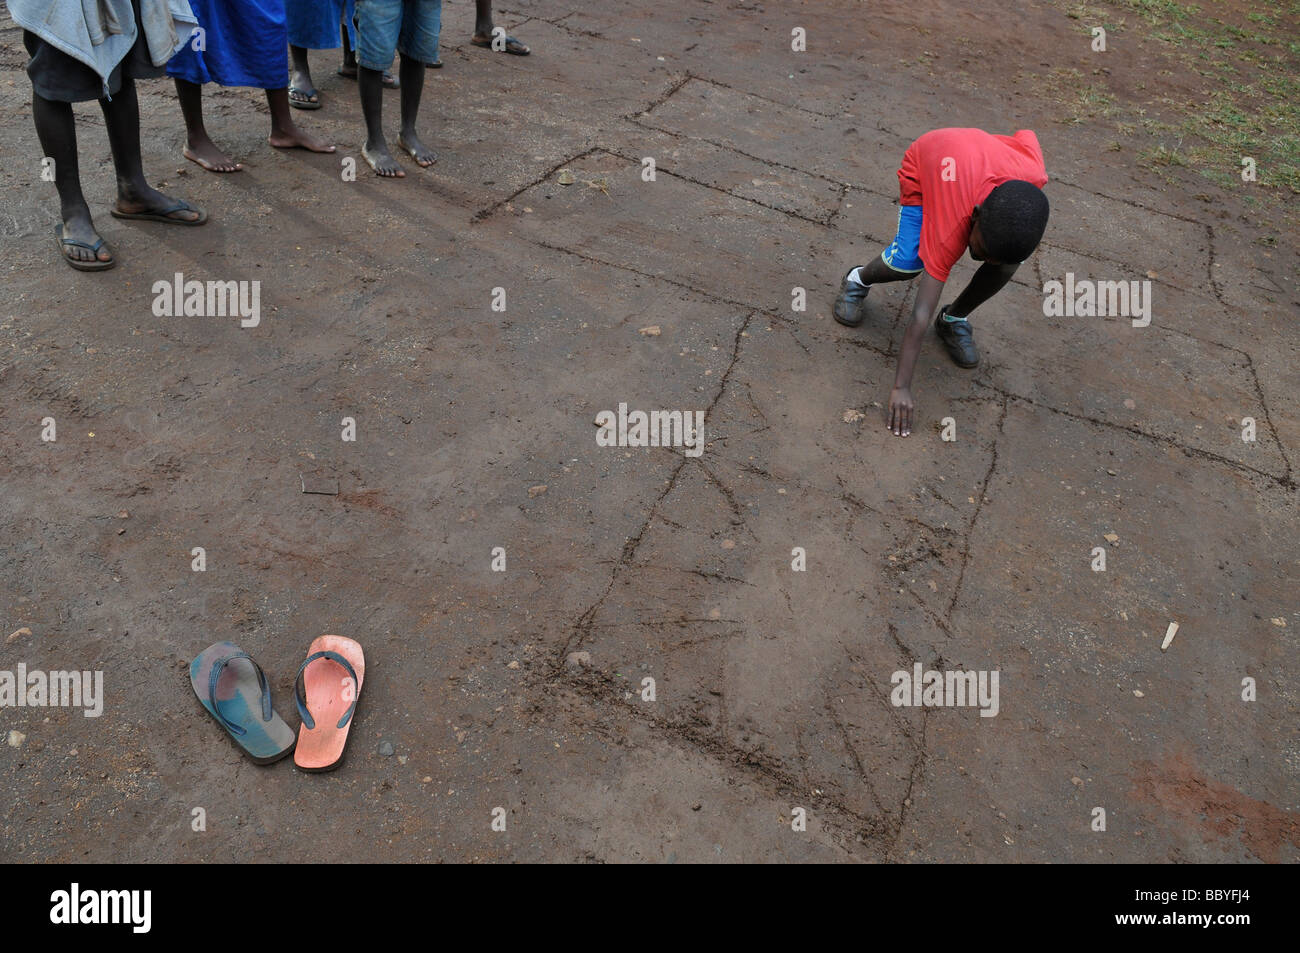 Young children playing hopscotch game in playground. Africa - Stock Image